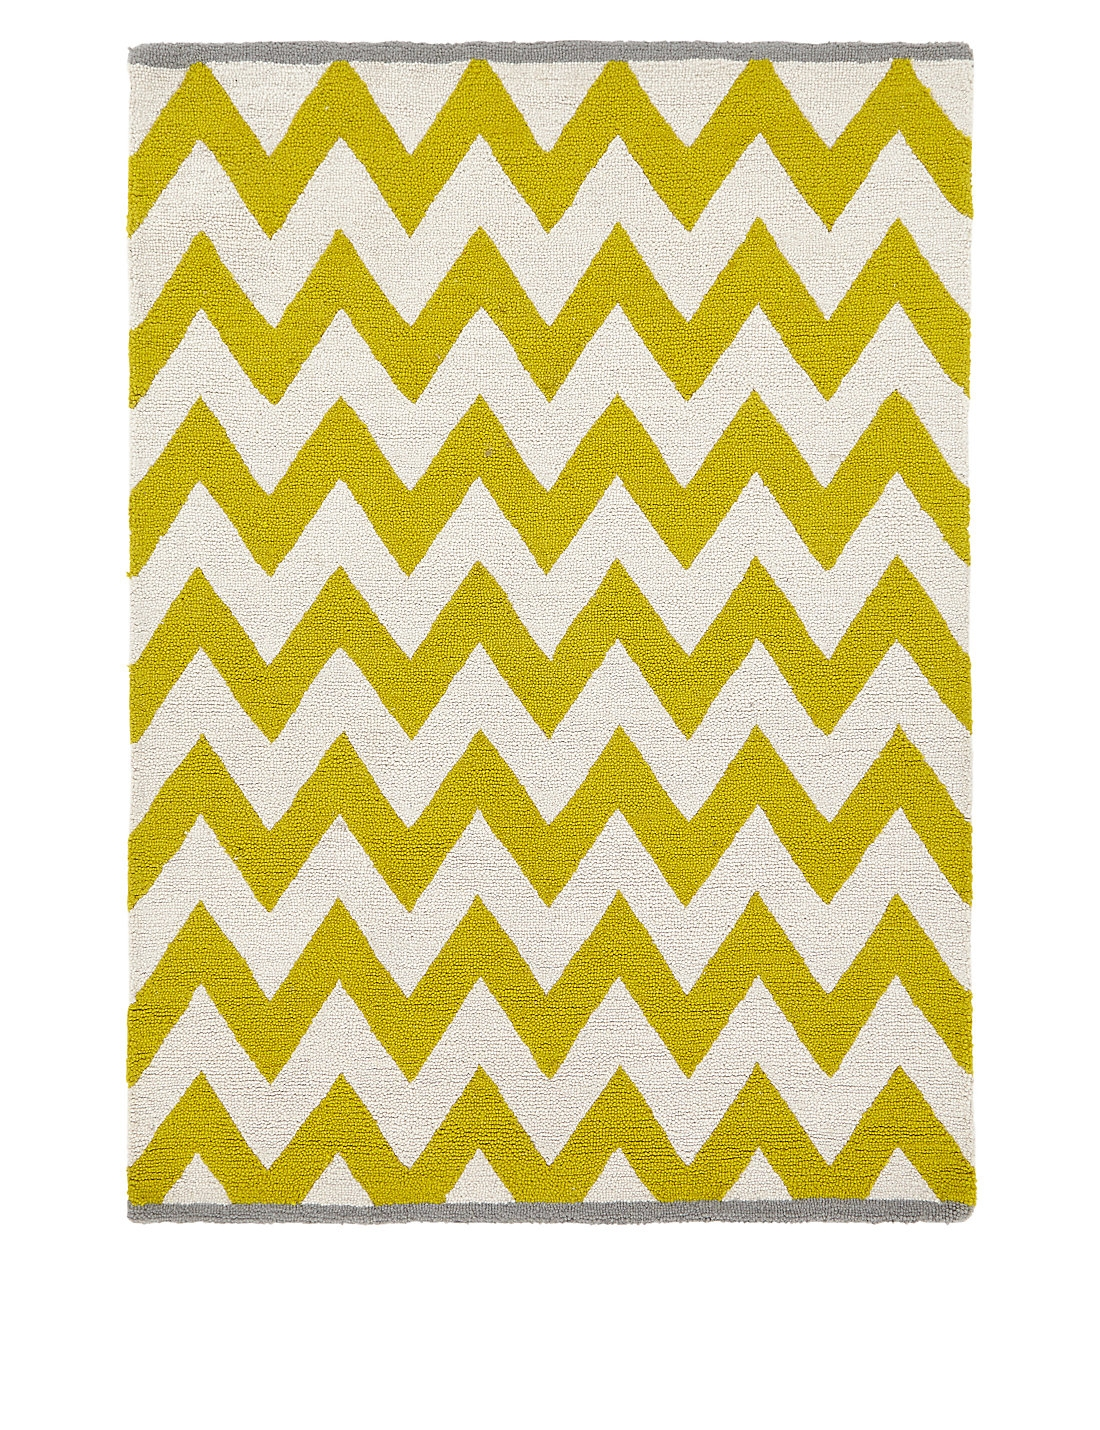 Chevron Print Bathroom Rugs